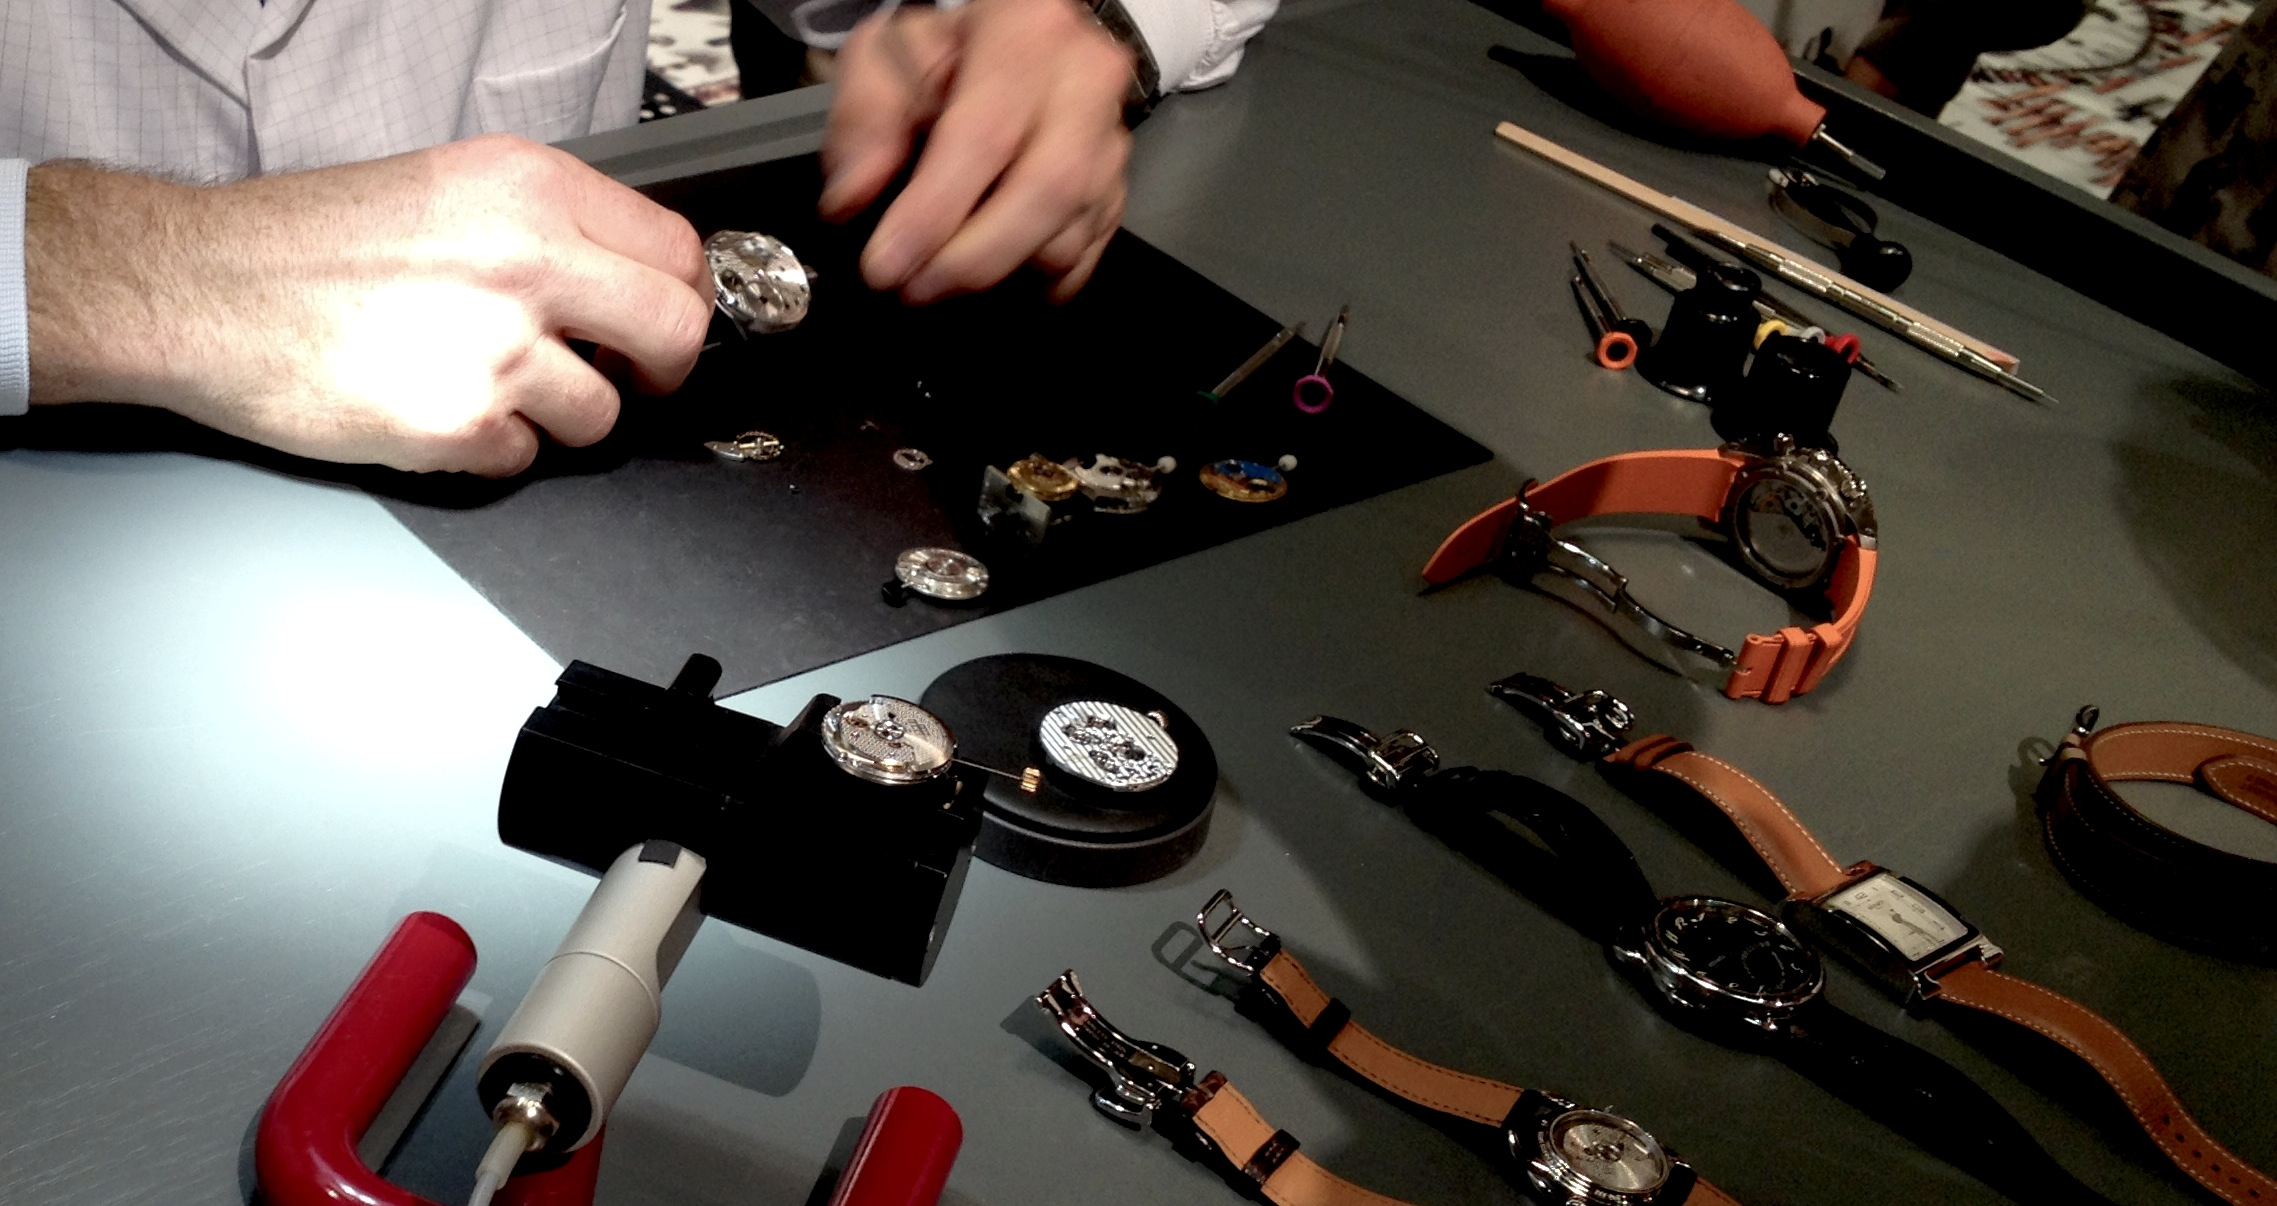 Watch-making